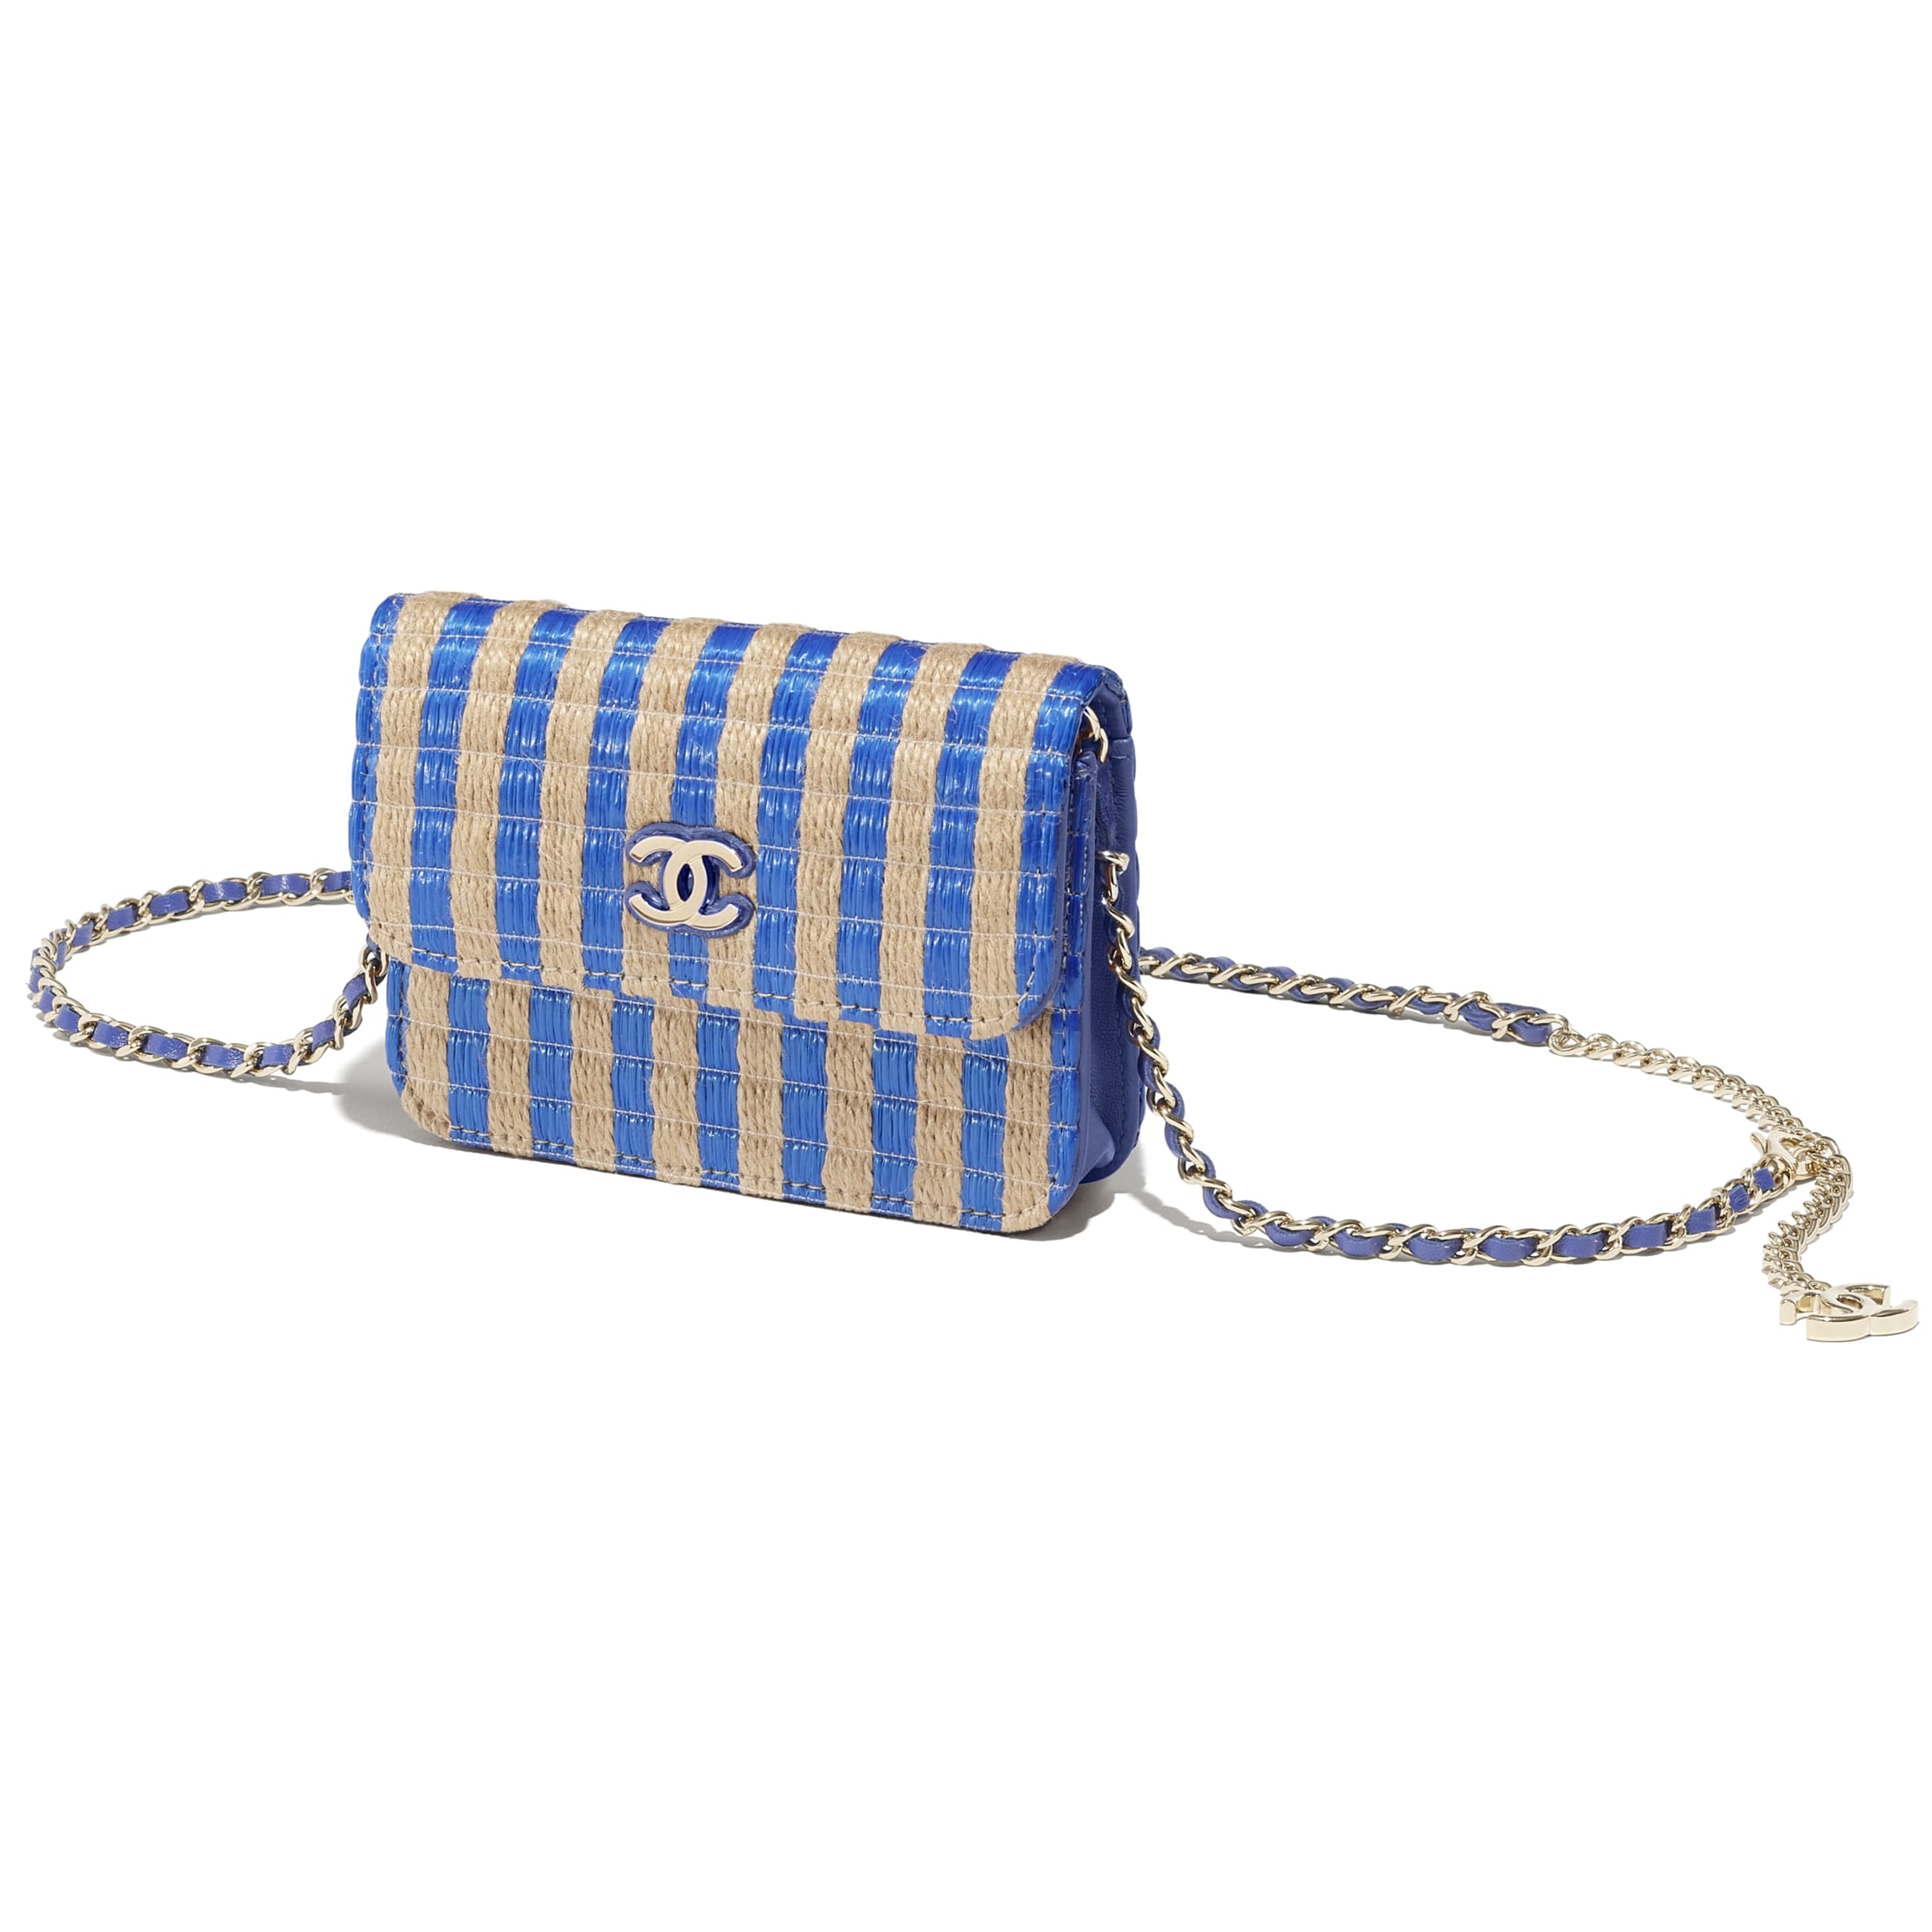 Belt Bag - Blue & Beige - Raffia, Jute Thread & Gold-Tone Metal - CHANEL - Extra view - see standard sized version